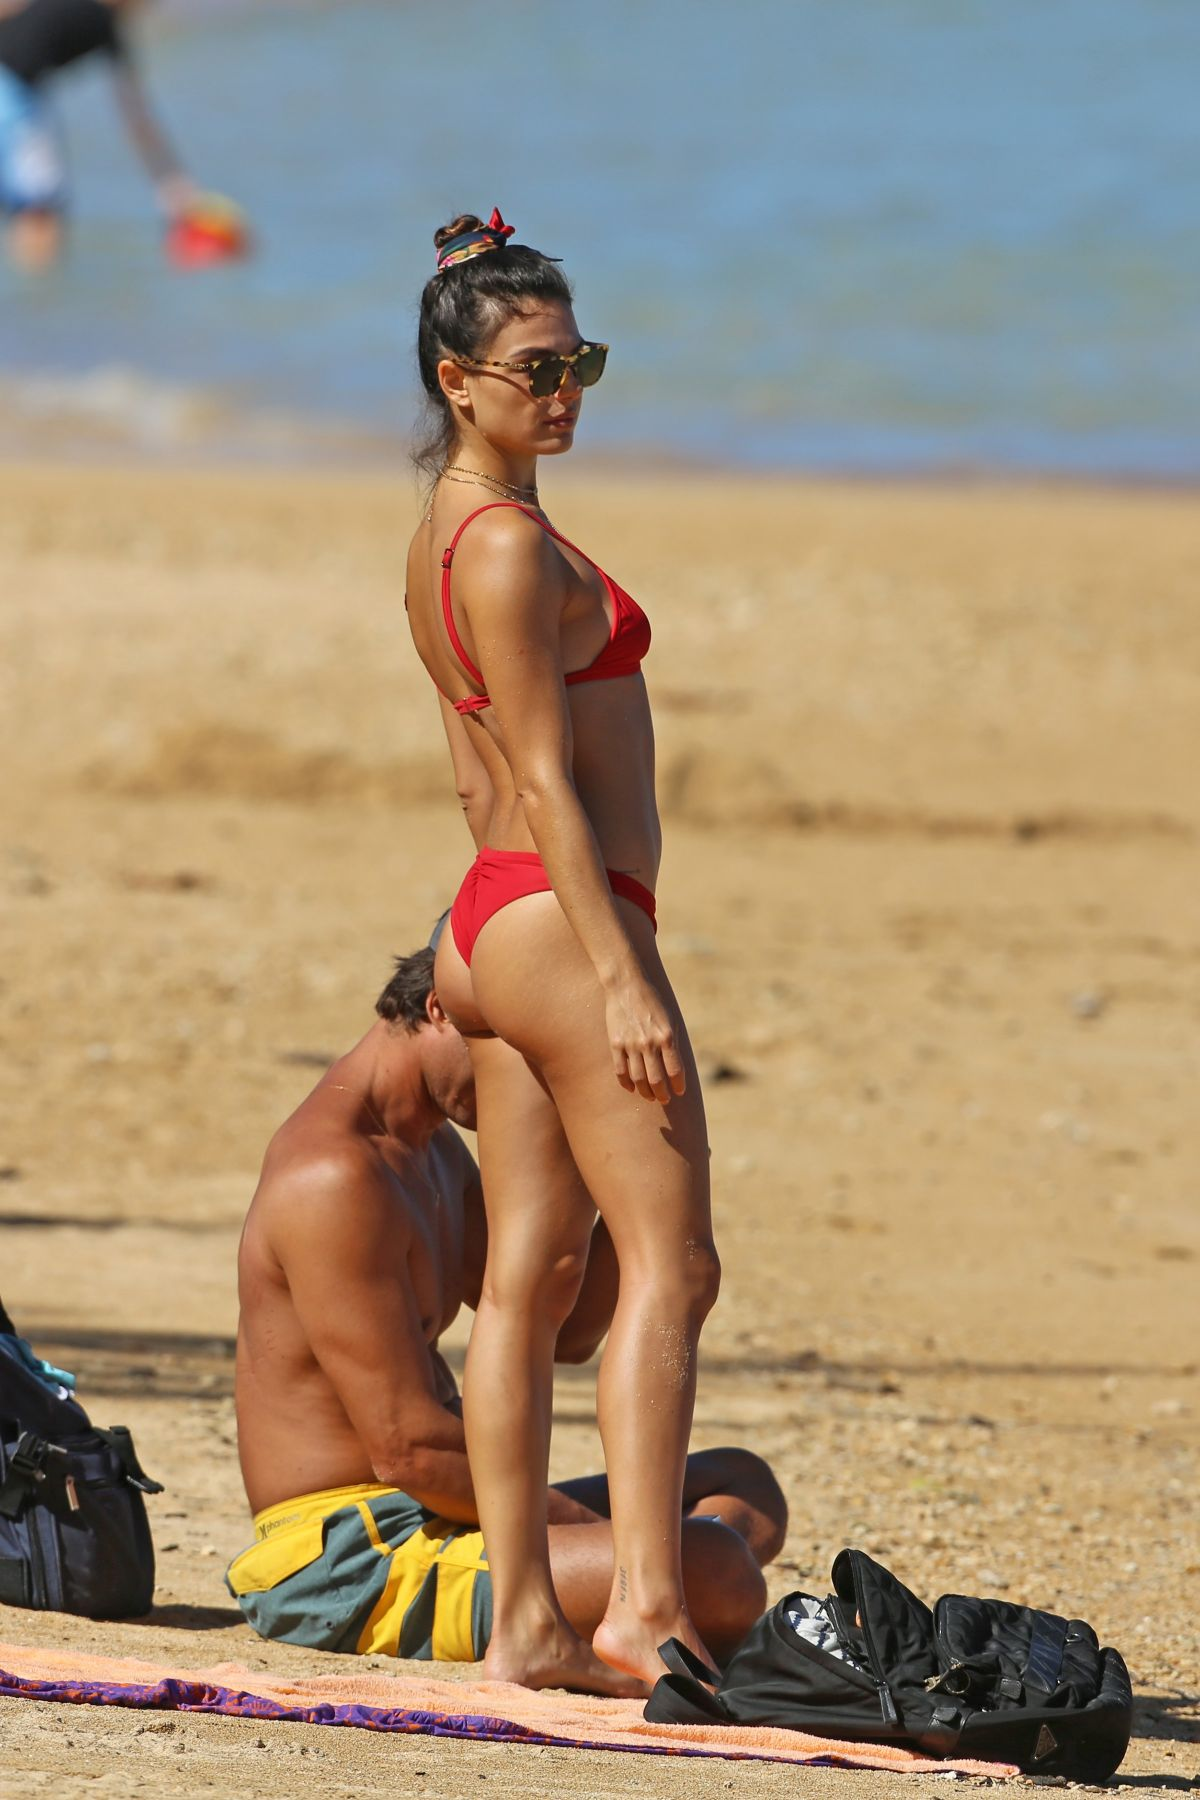 Isis Valverde in Red Bikini on the beach in Hawaii Pic 8 of 35